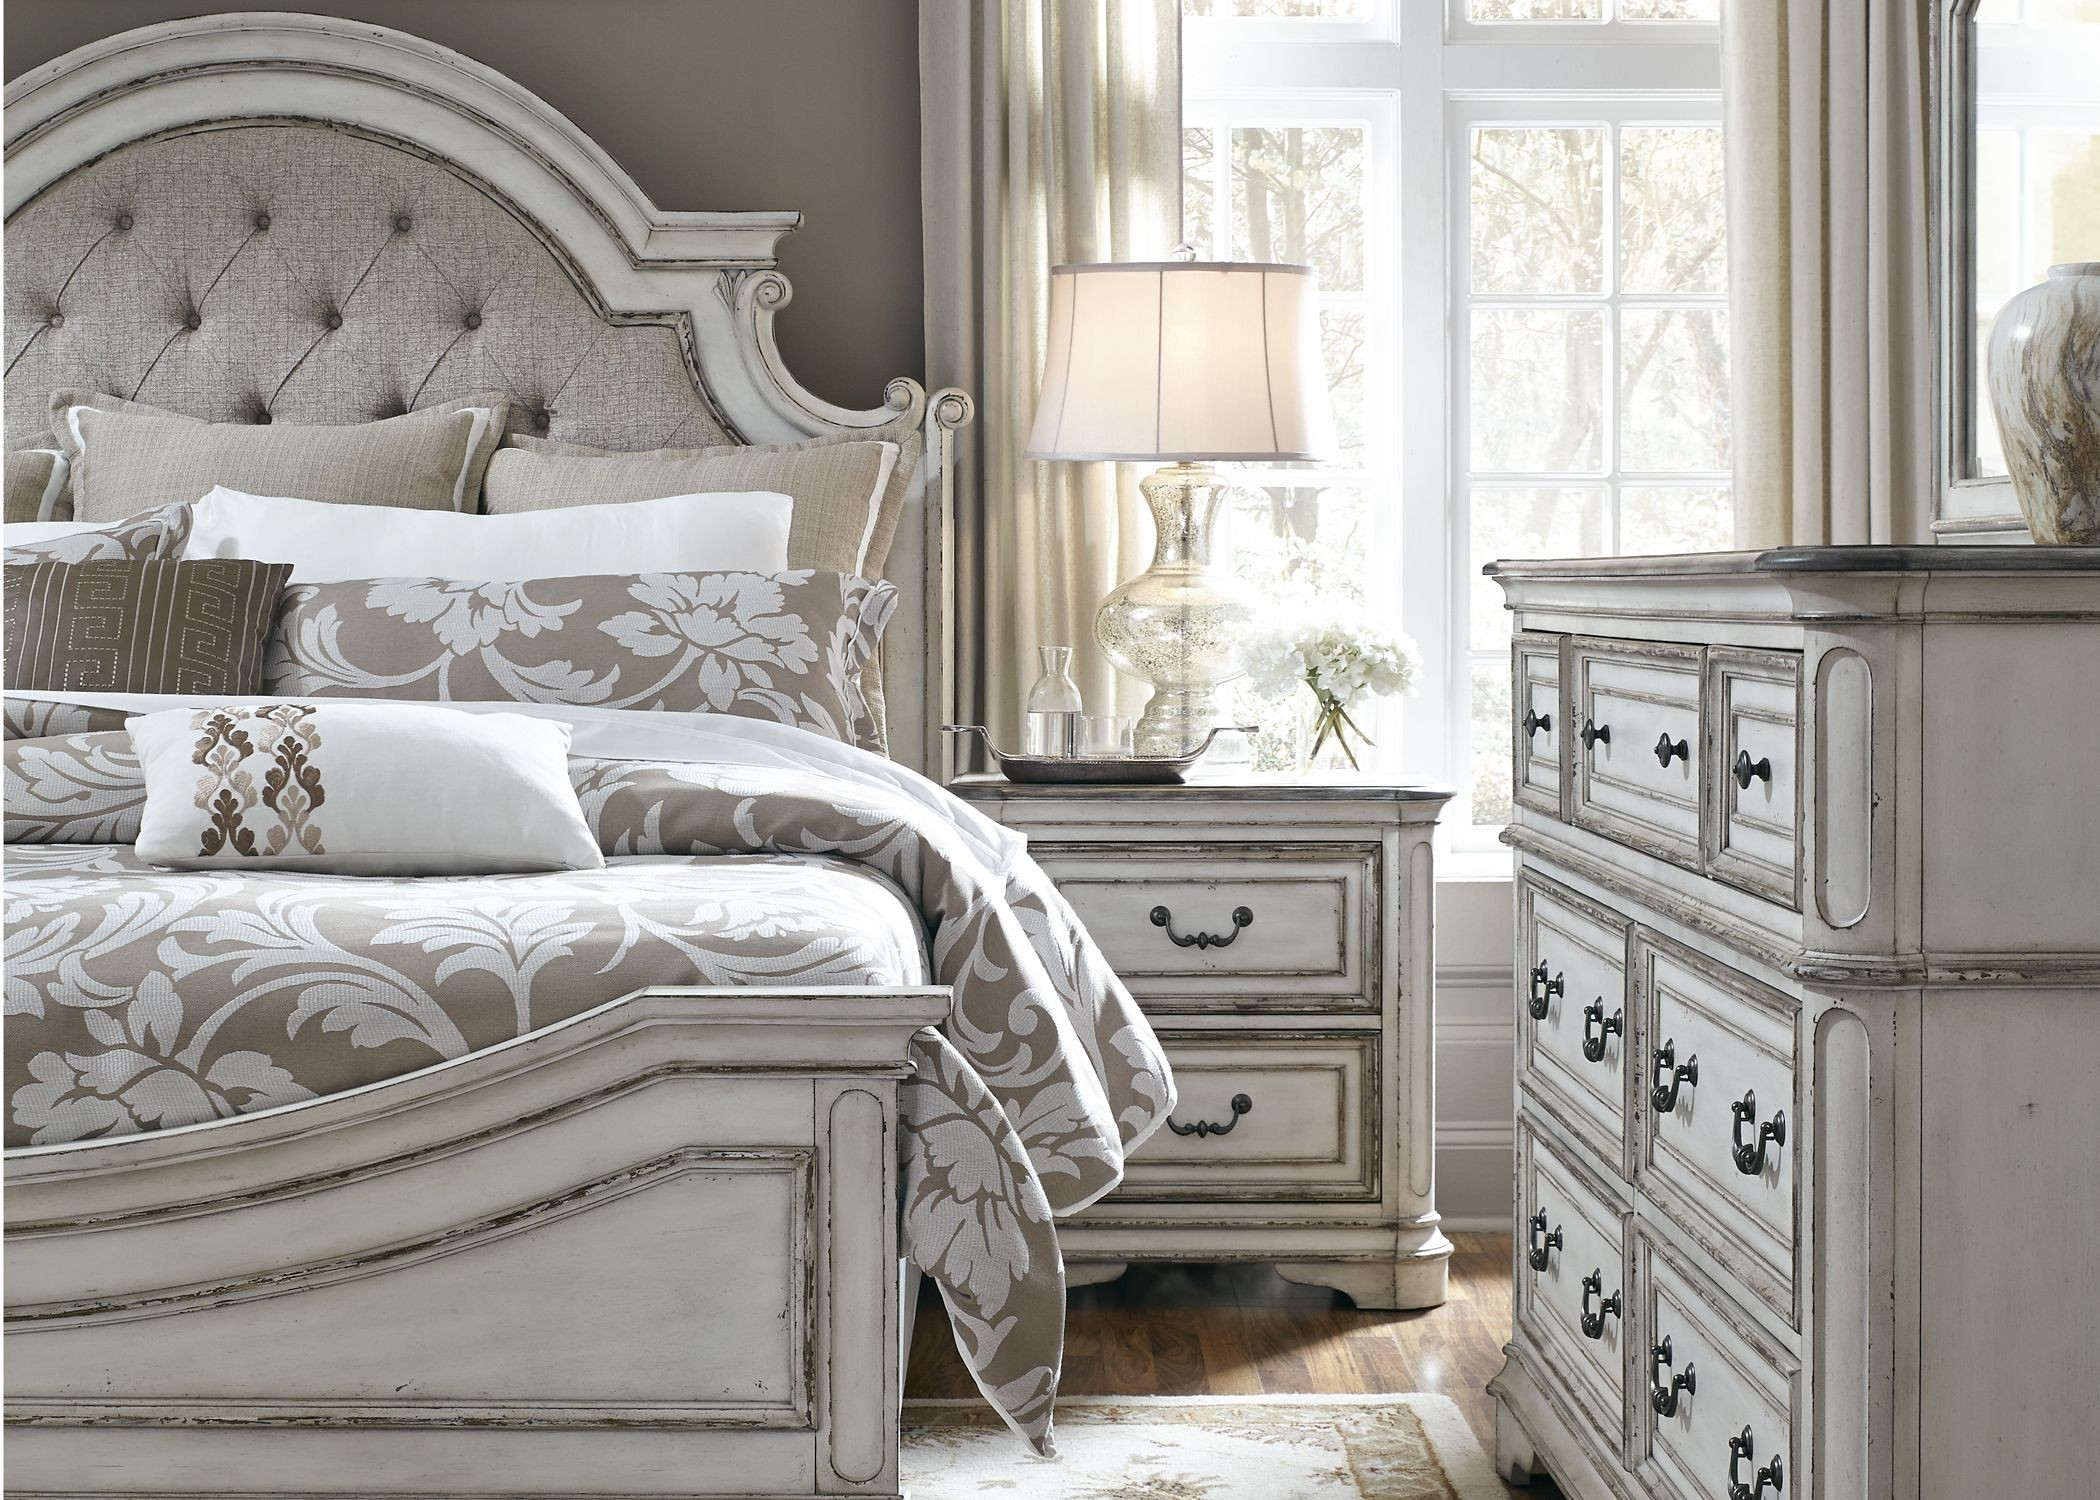 magnolia manor antique white upholstered panel bedroom set from liberty coleman furniture. Black Bedroom Furniture Sets. Home Design Ideas